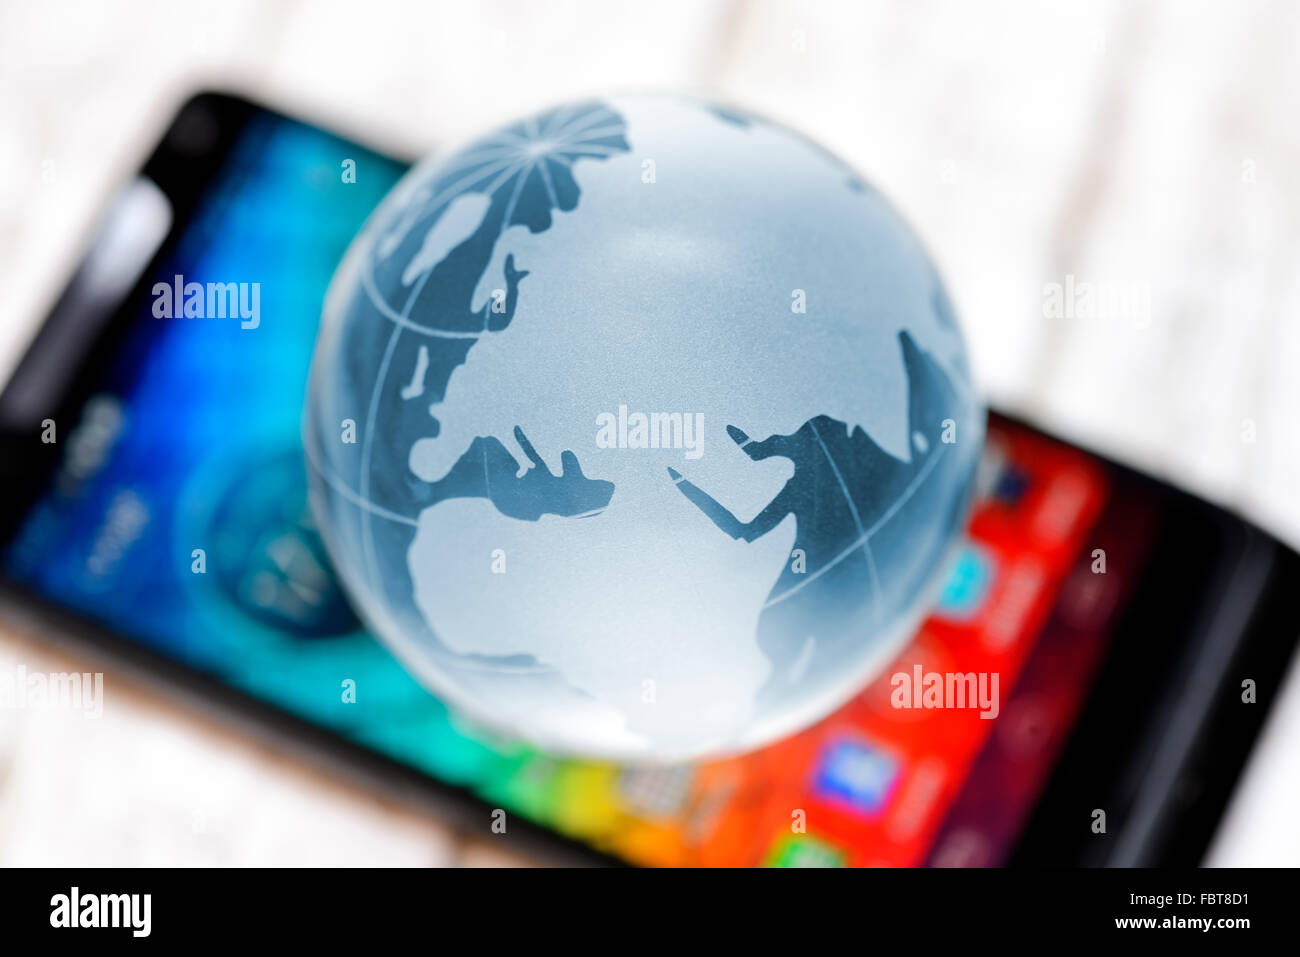 Glass globe on smartphone, roaming charges - Stock Image